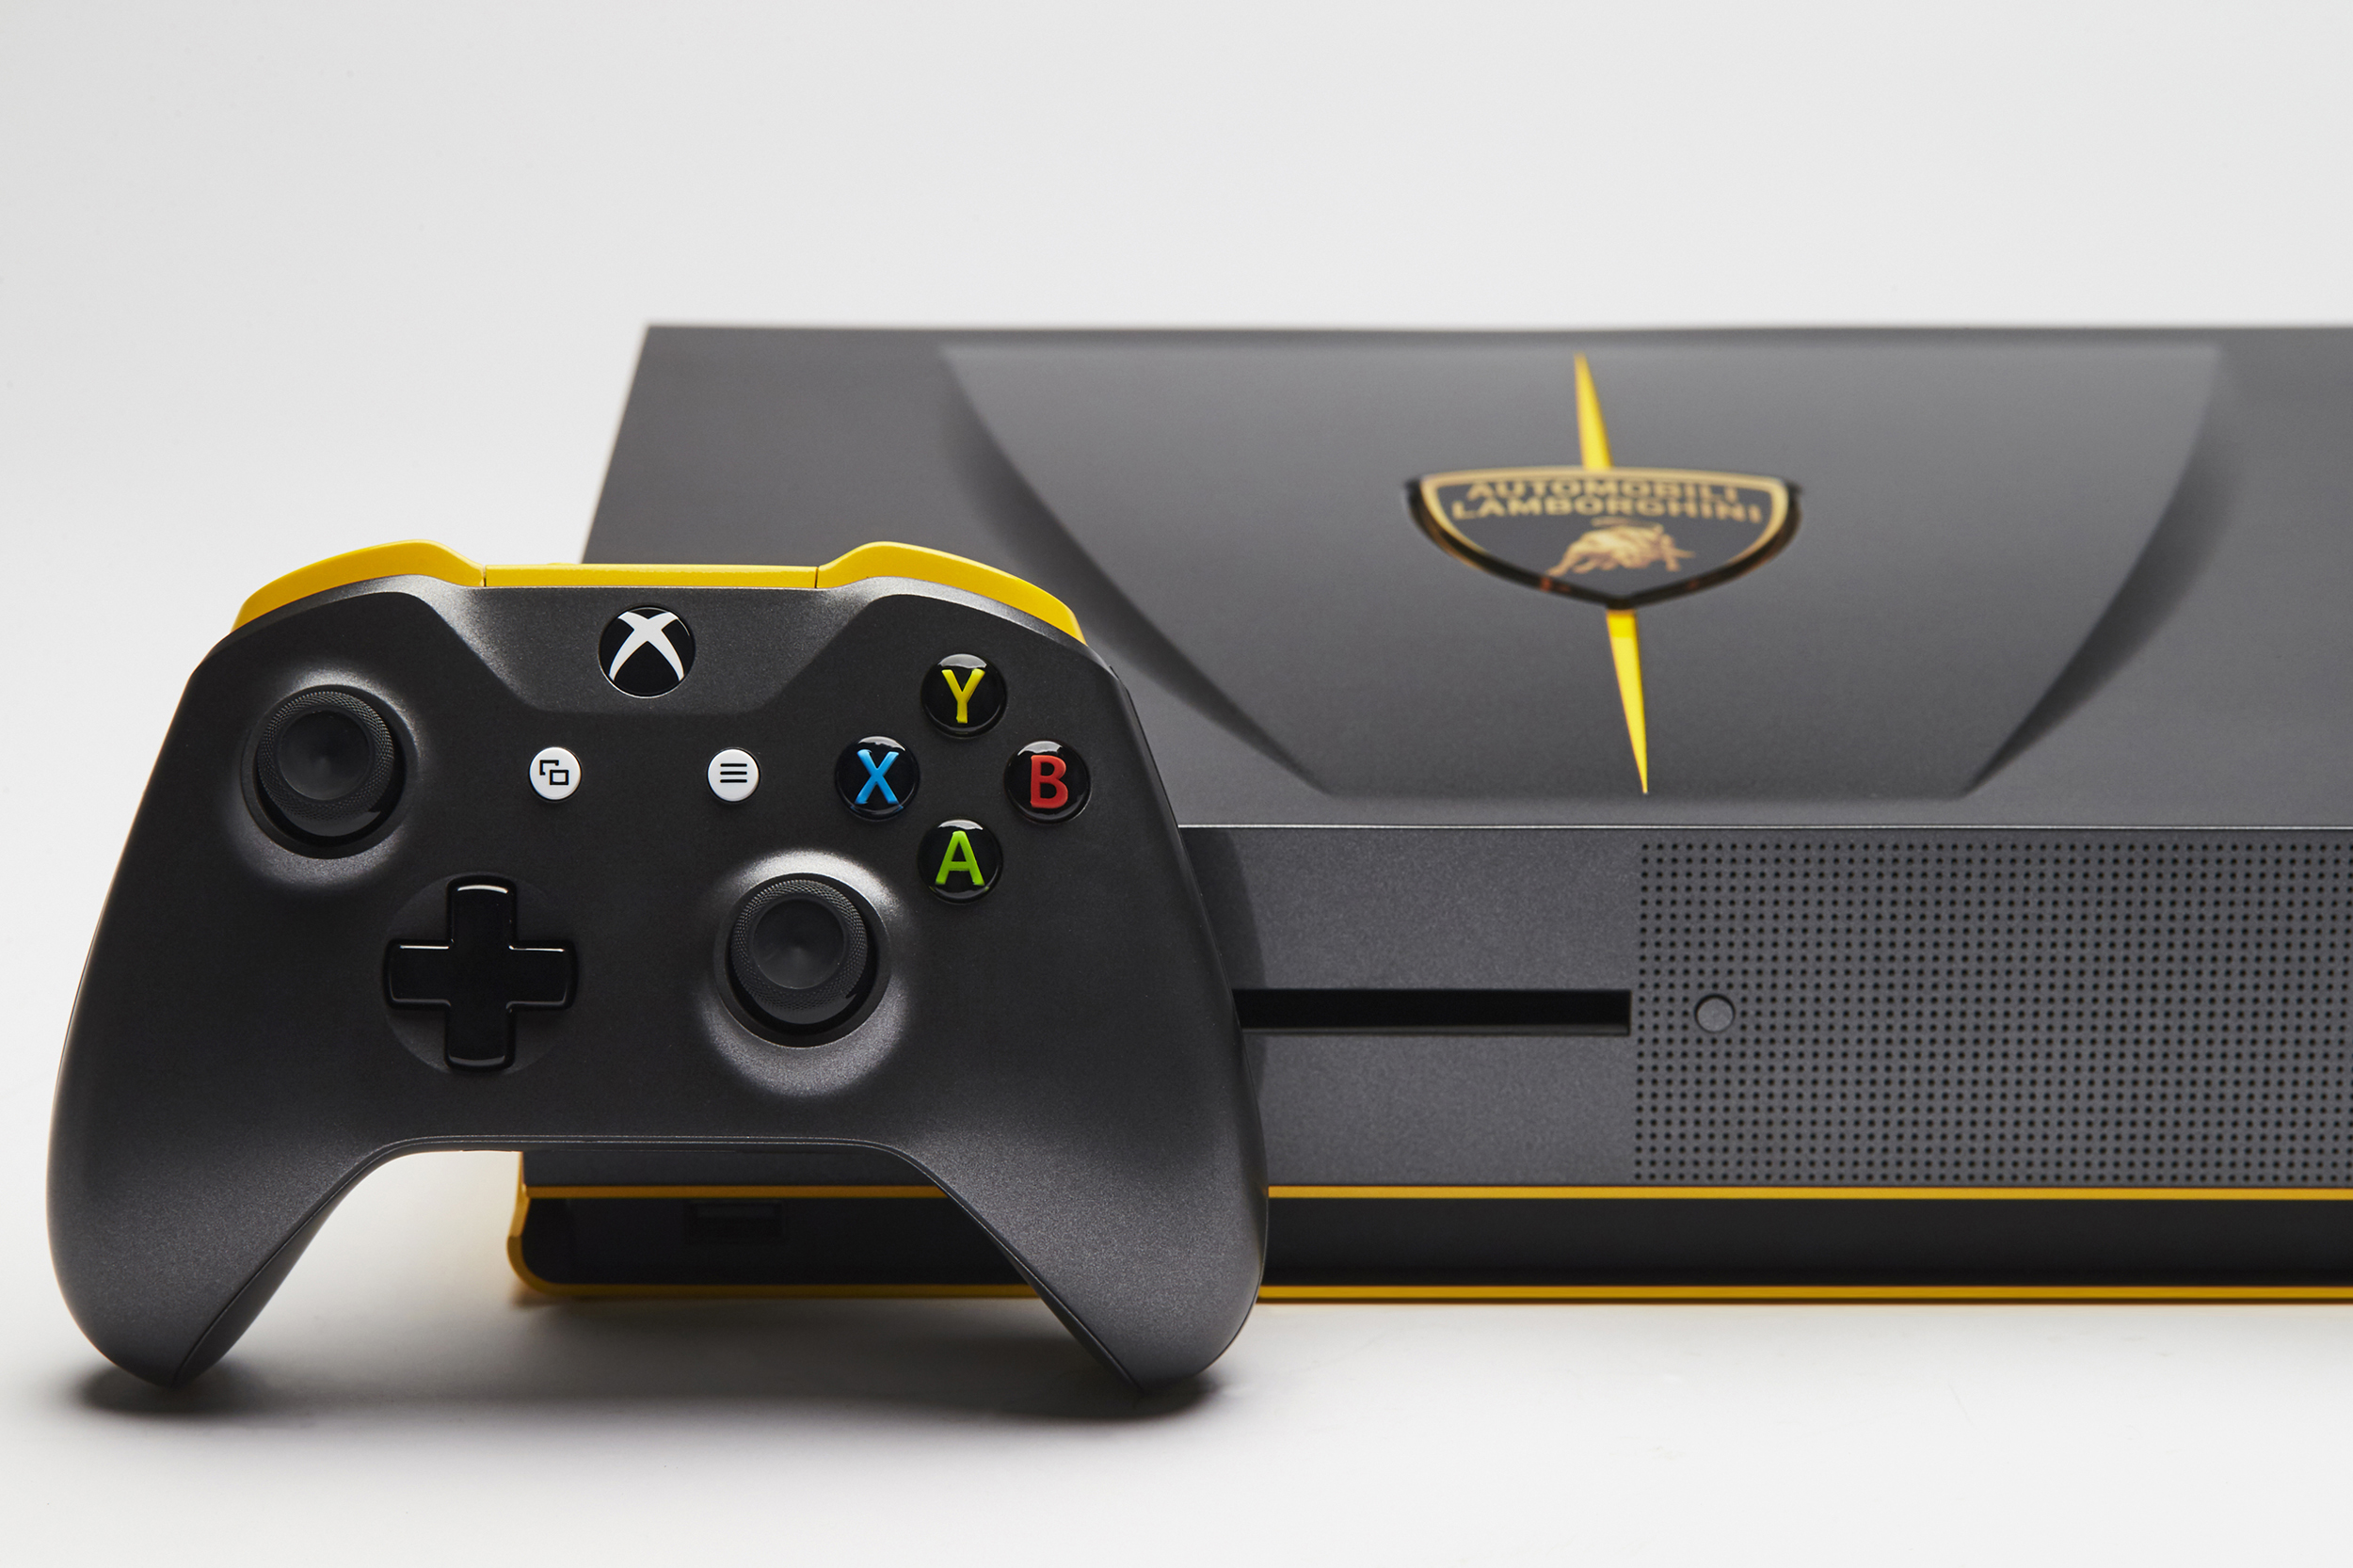 One-of-a-kind Lamborghini Centenario Xbox One S is ...